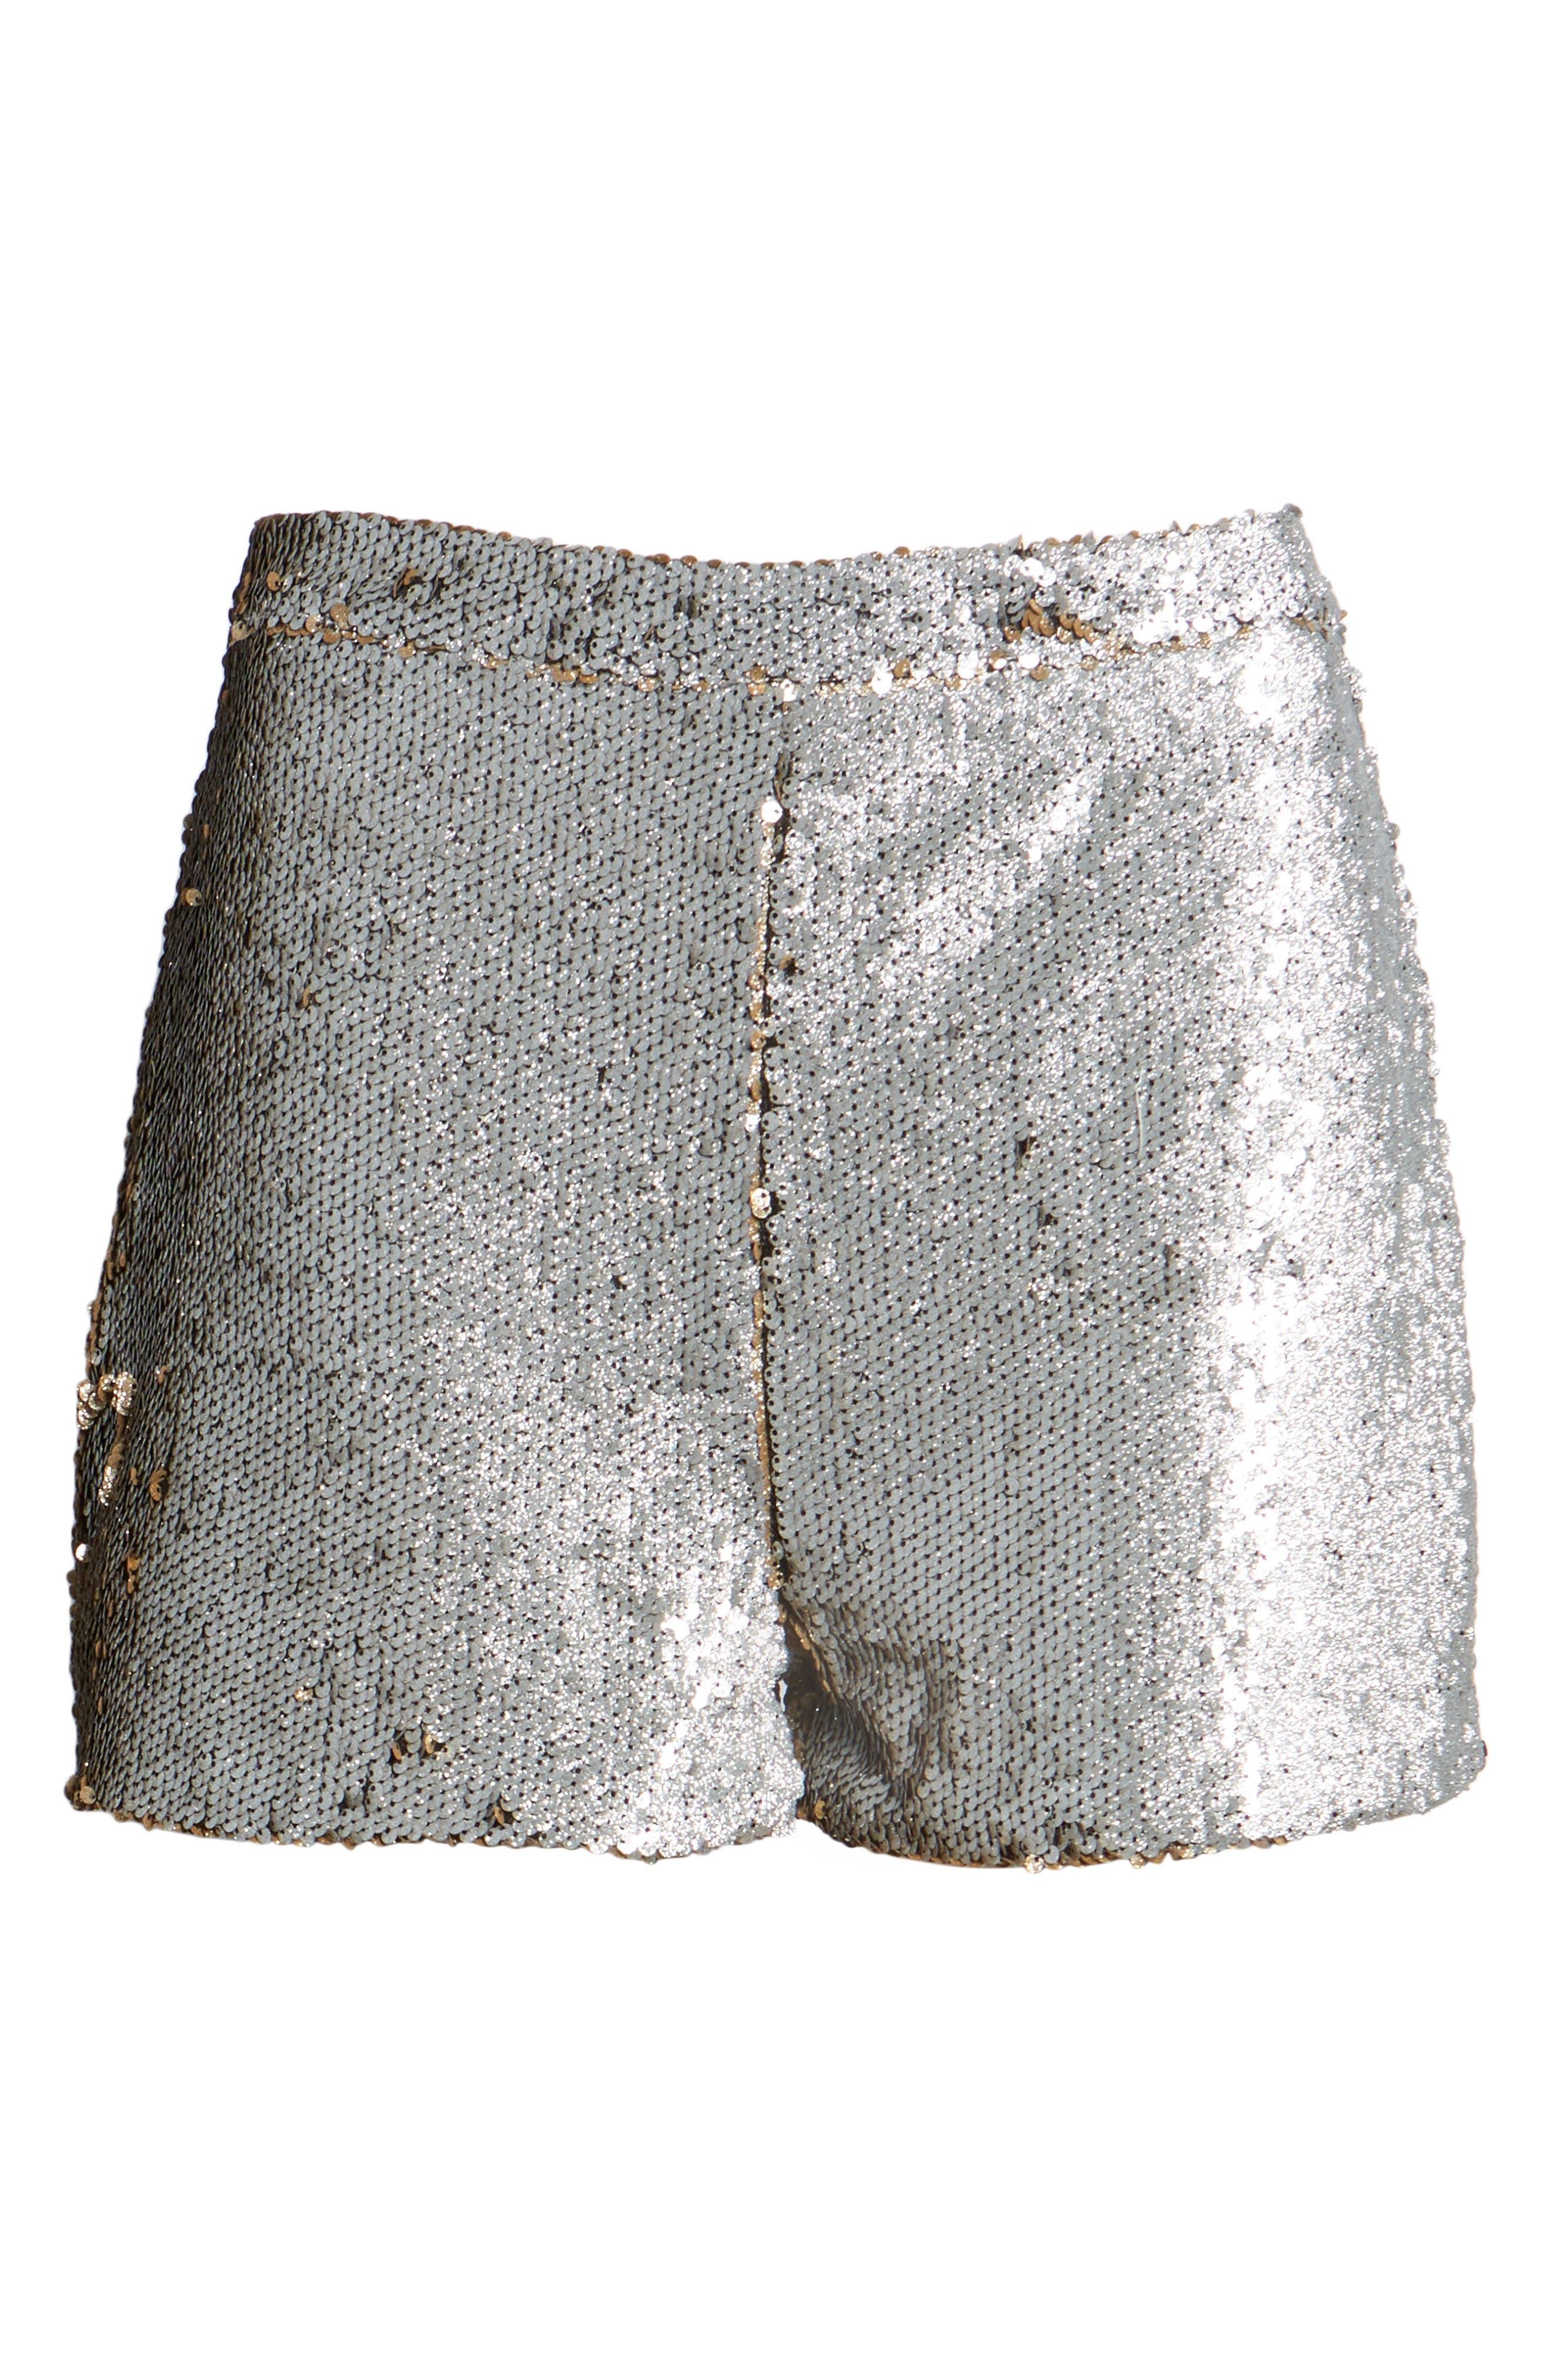 High Waist Sequin Shorts,                             Alternate thumbnail 6, color,                             710